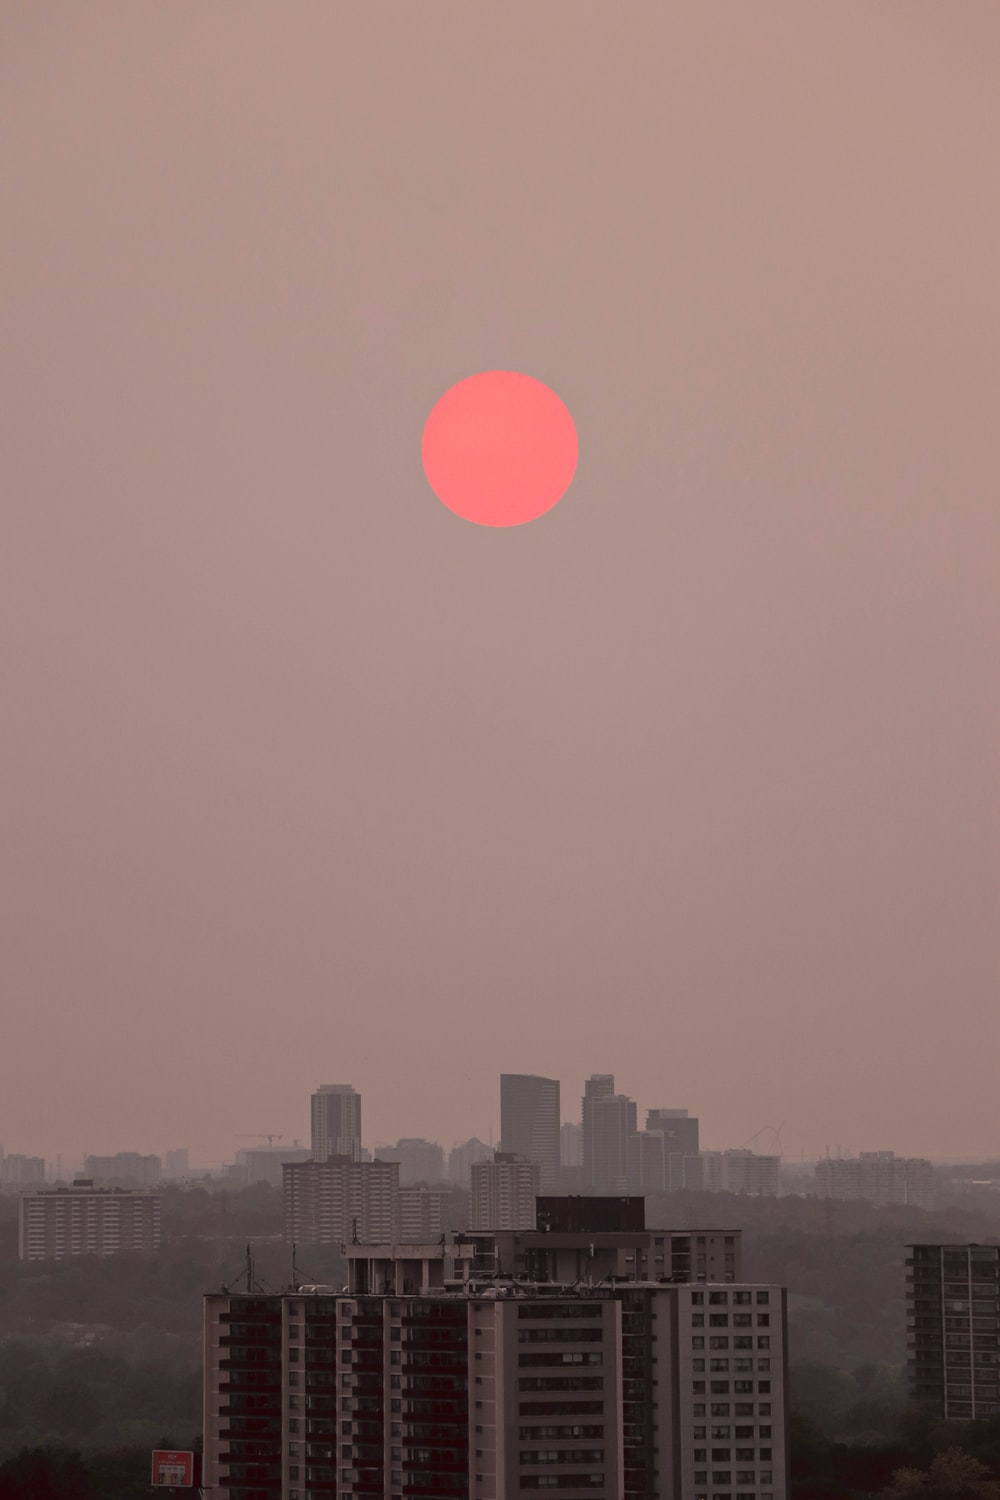 city skyline during sunset with red moon